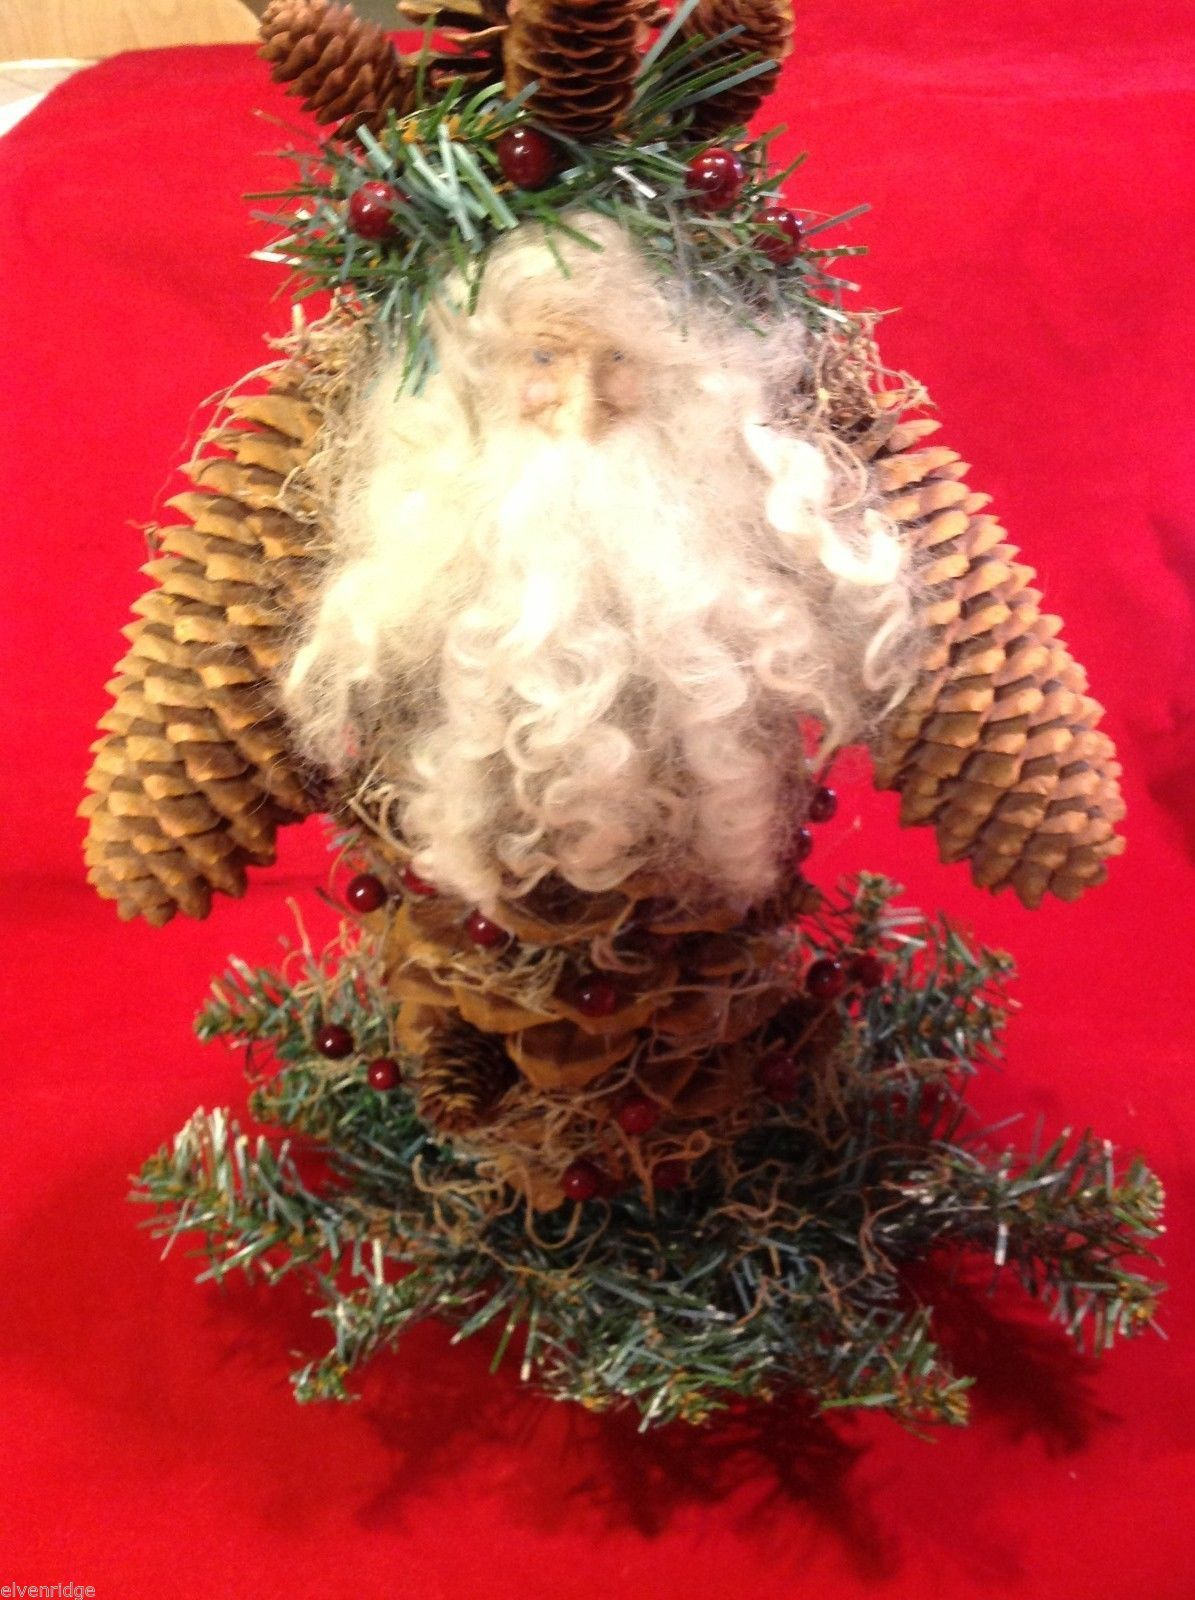 Santa figurine made of giant  pine cone and others